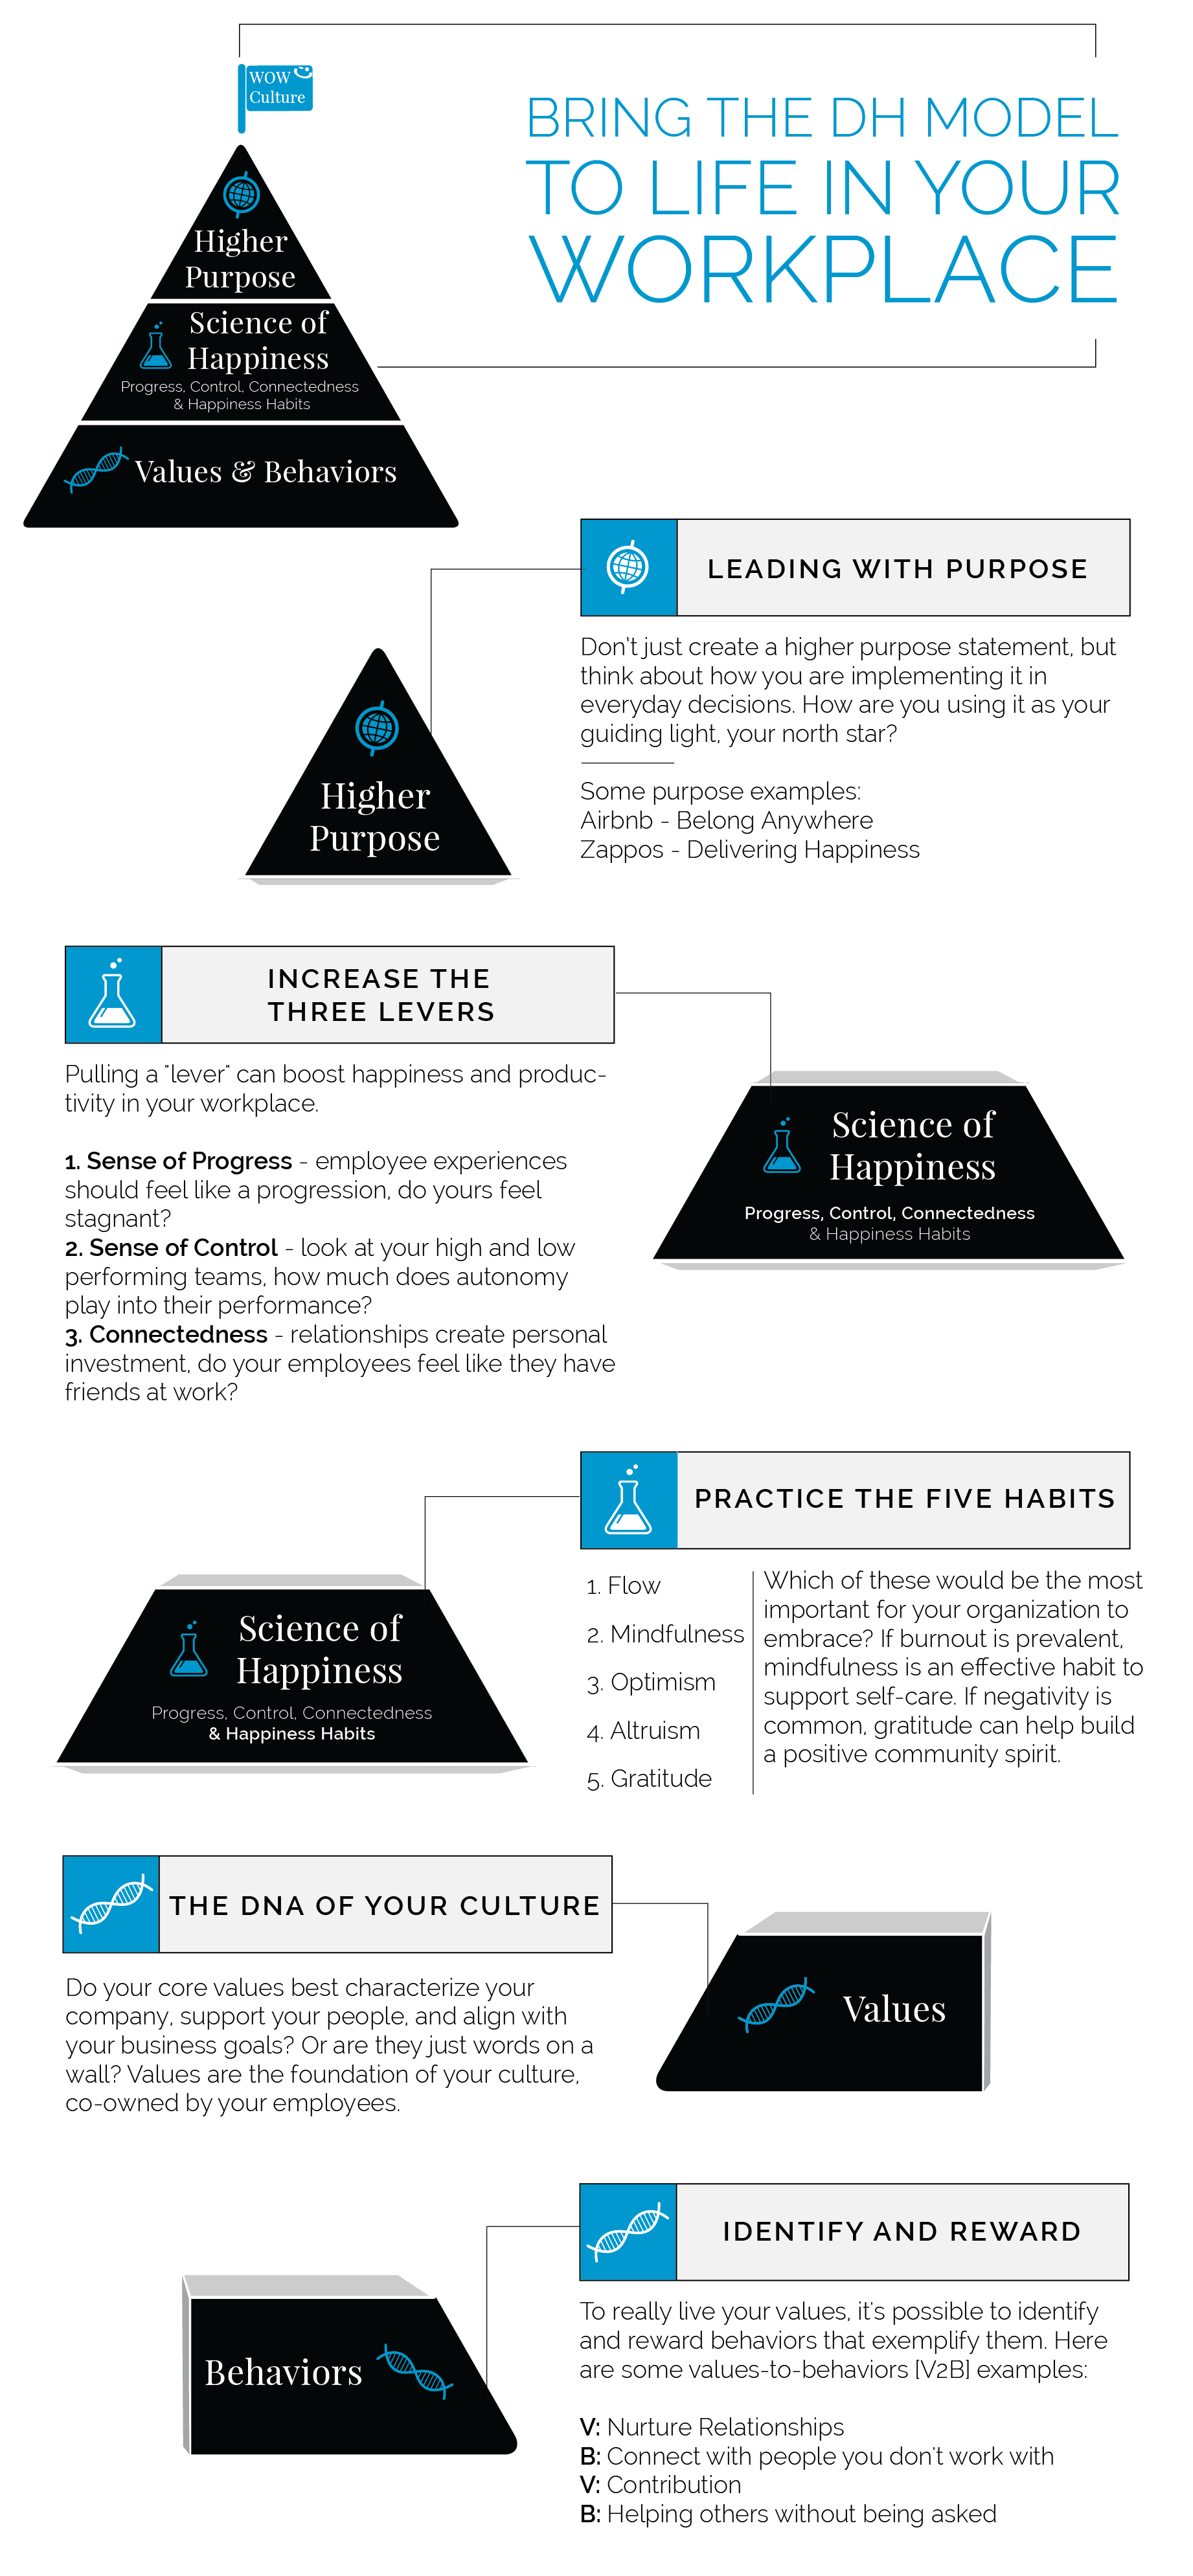 authentic great look detailed pictures How To Bring the DH Model to Life [INFOGRAPHIC]